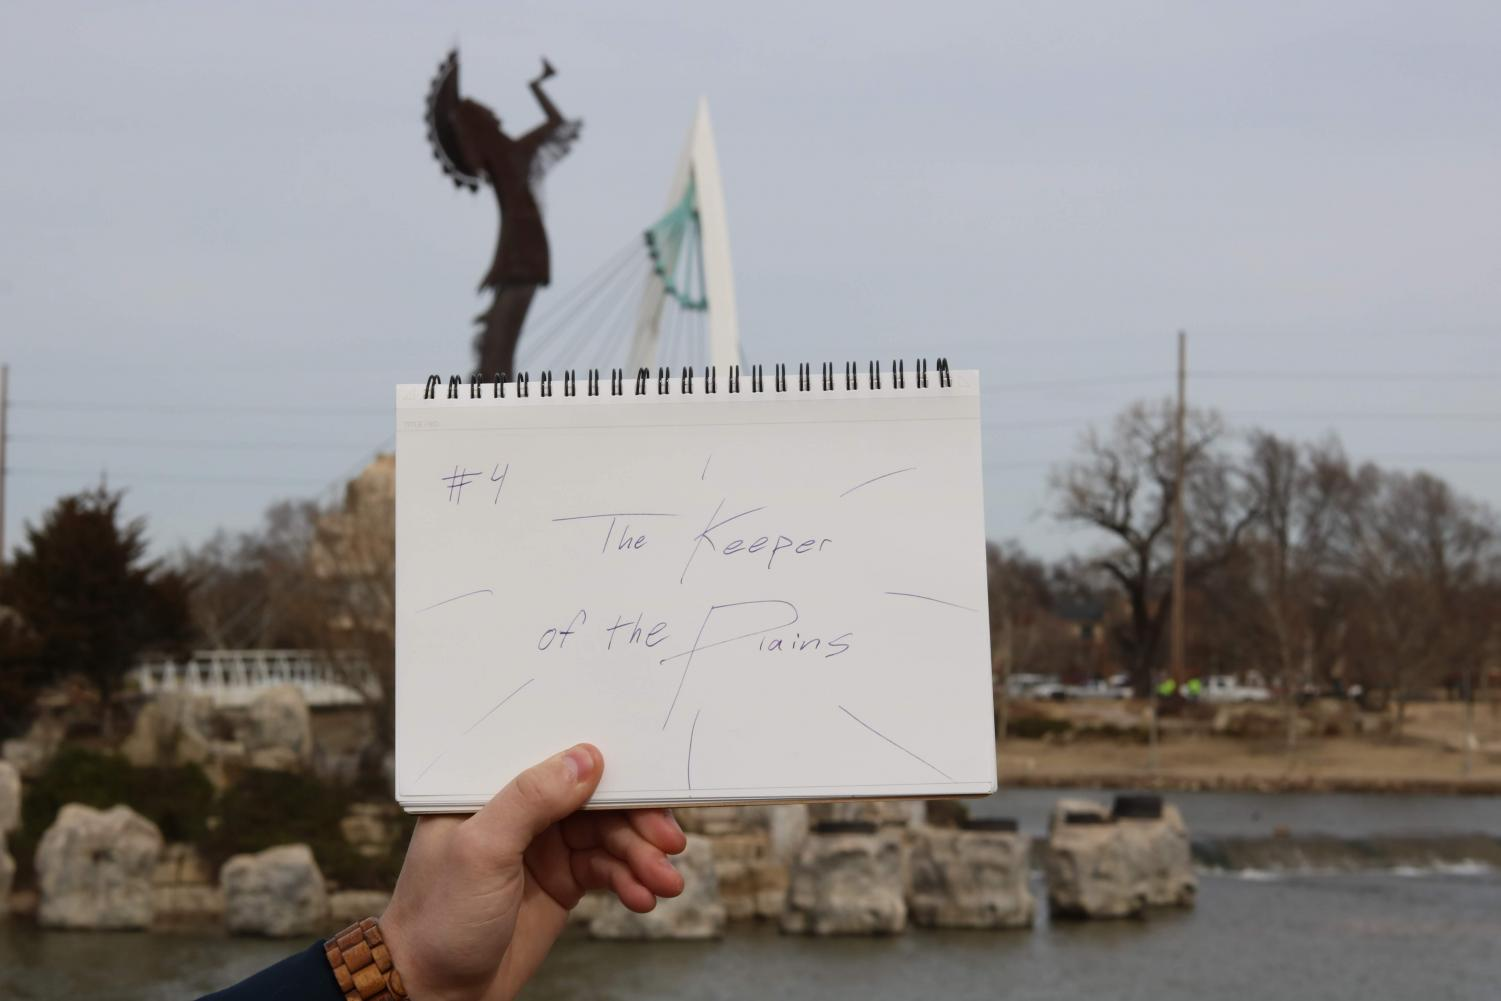 Stop #4: The Keeper of the Plains. Catch some fresh air and relax by the river with your valentine at this legendary Wichita monument.